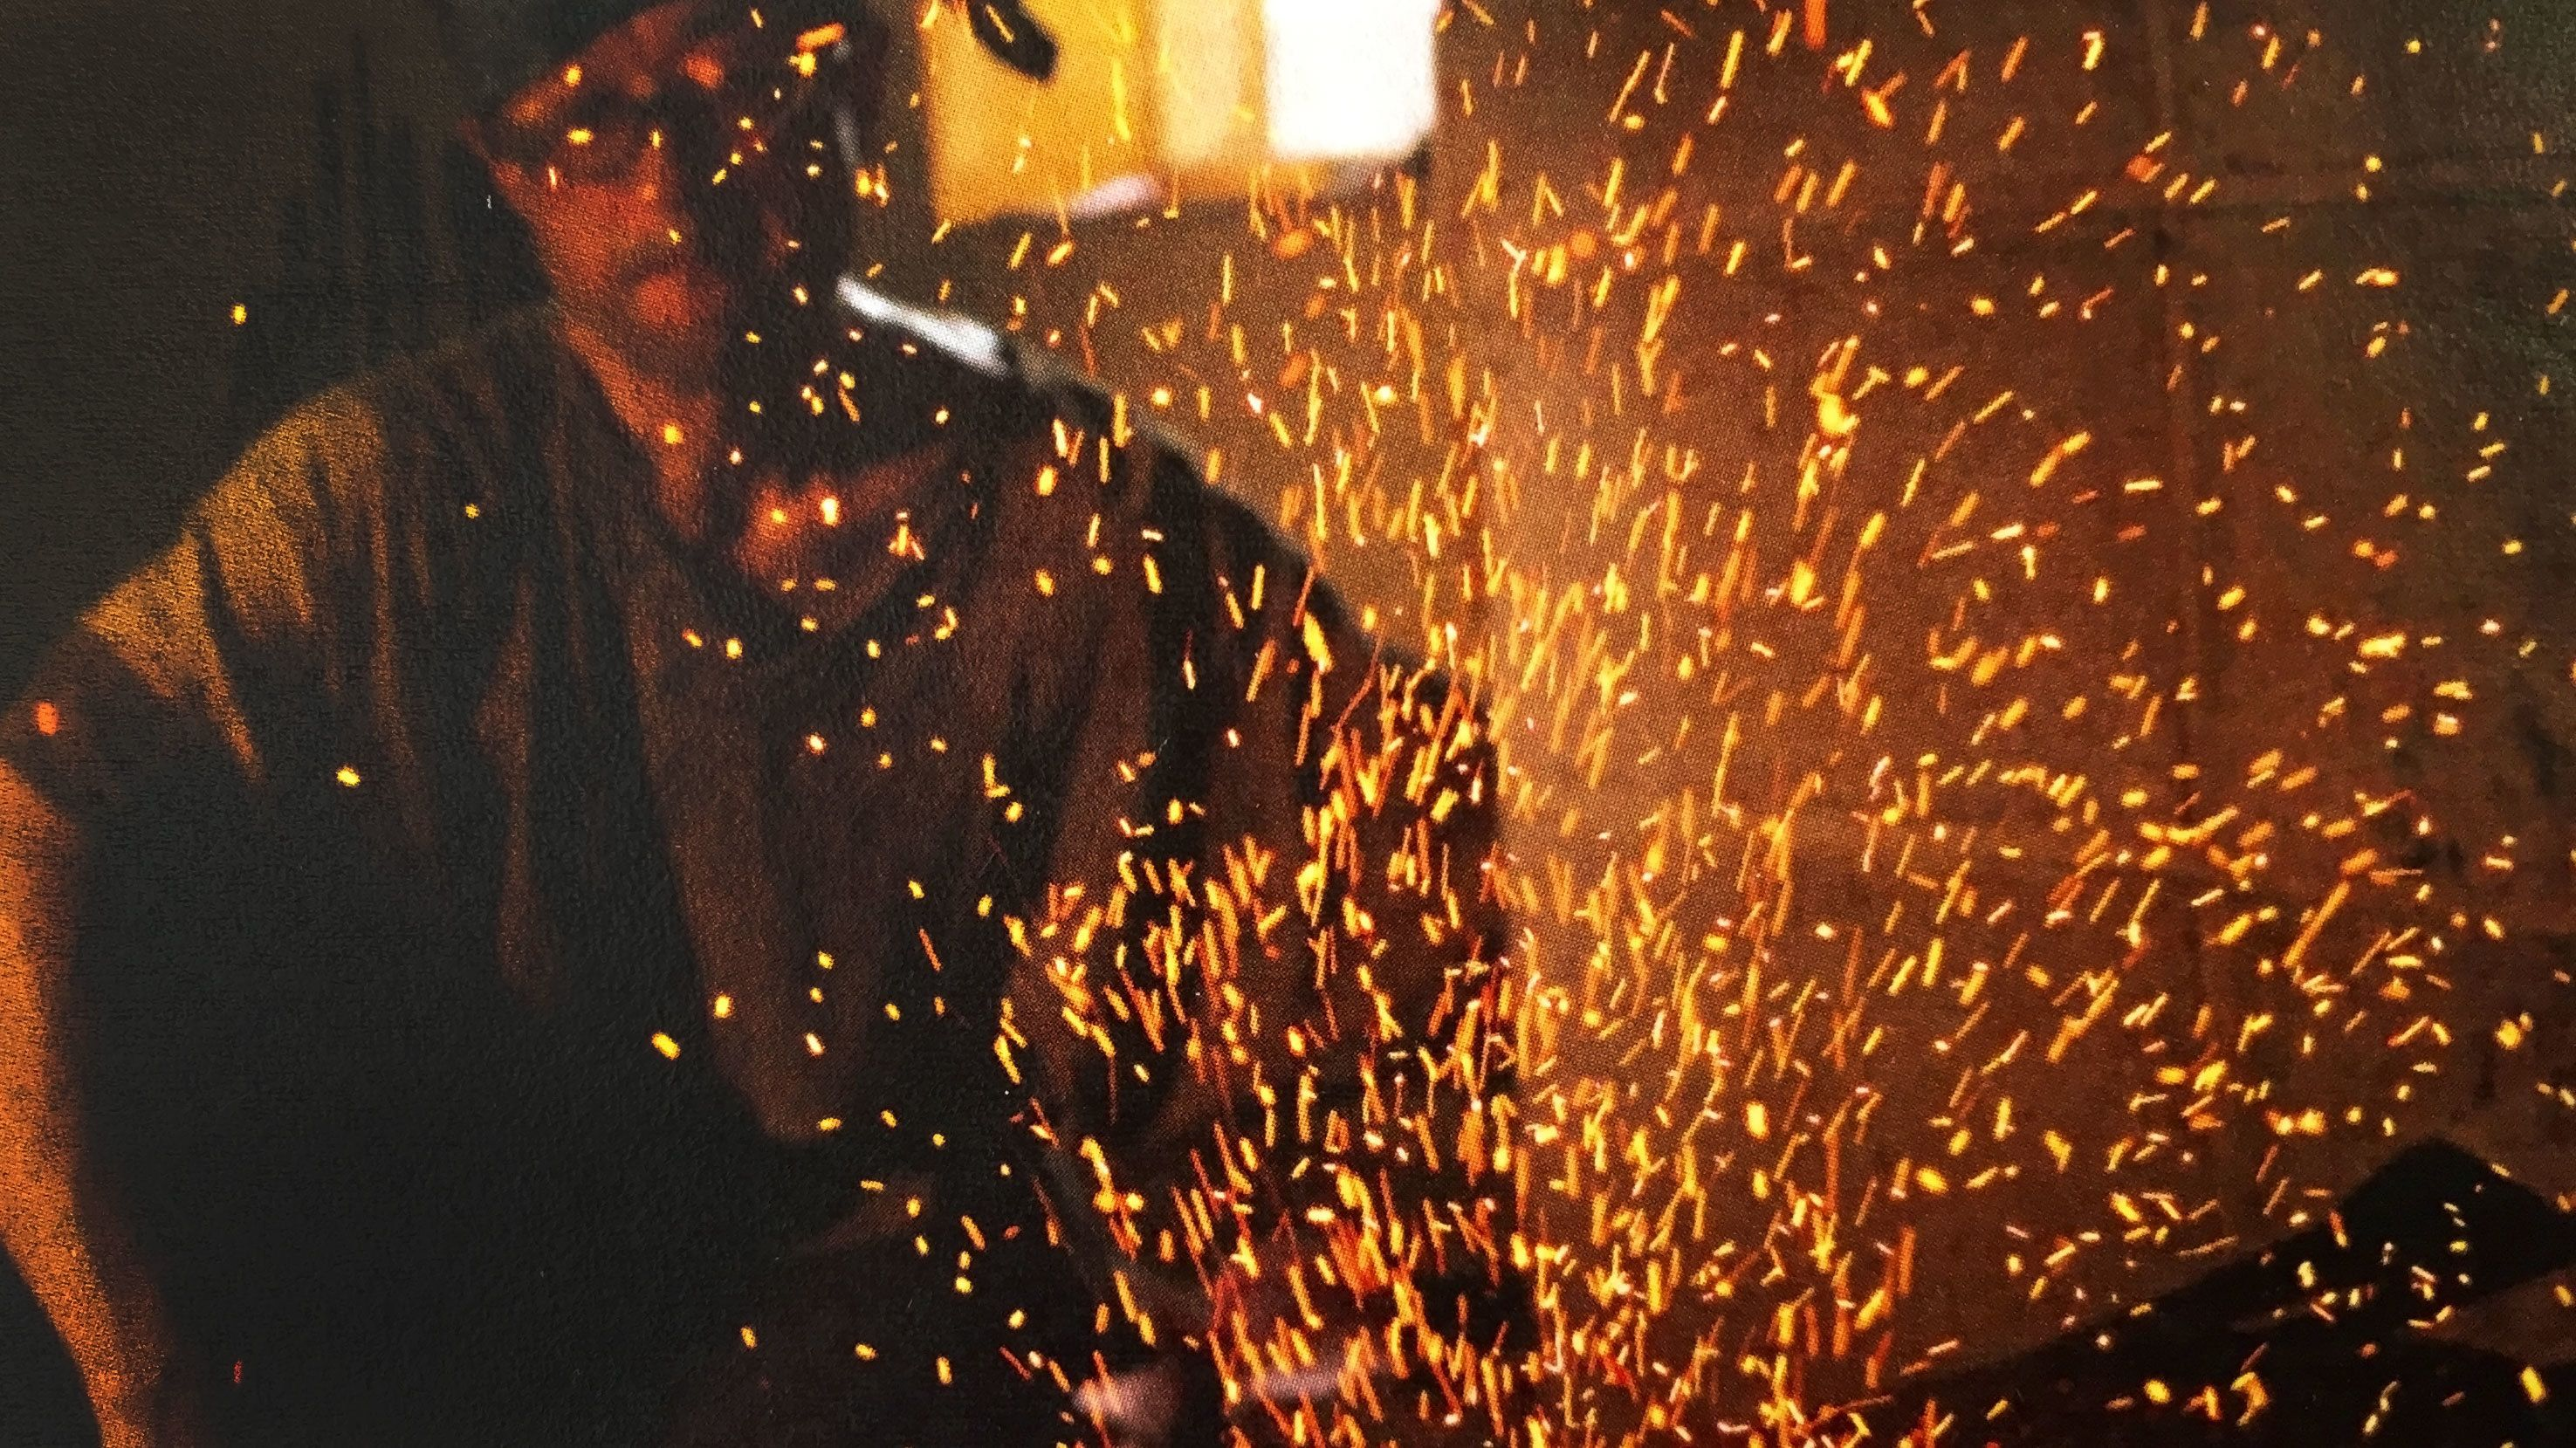 Embers fly as work is done on metal with the blacksmith in the background in Kyoto